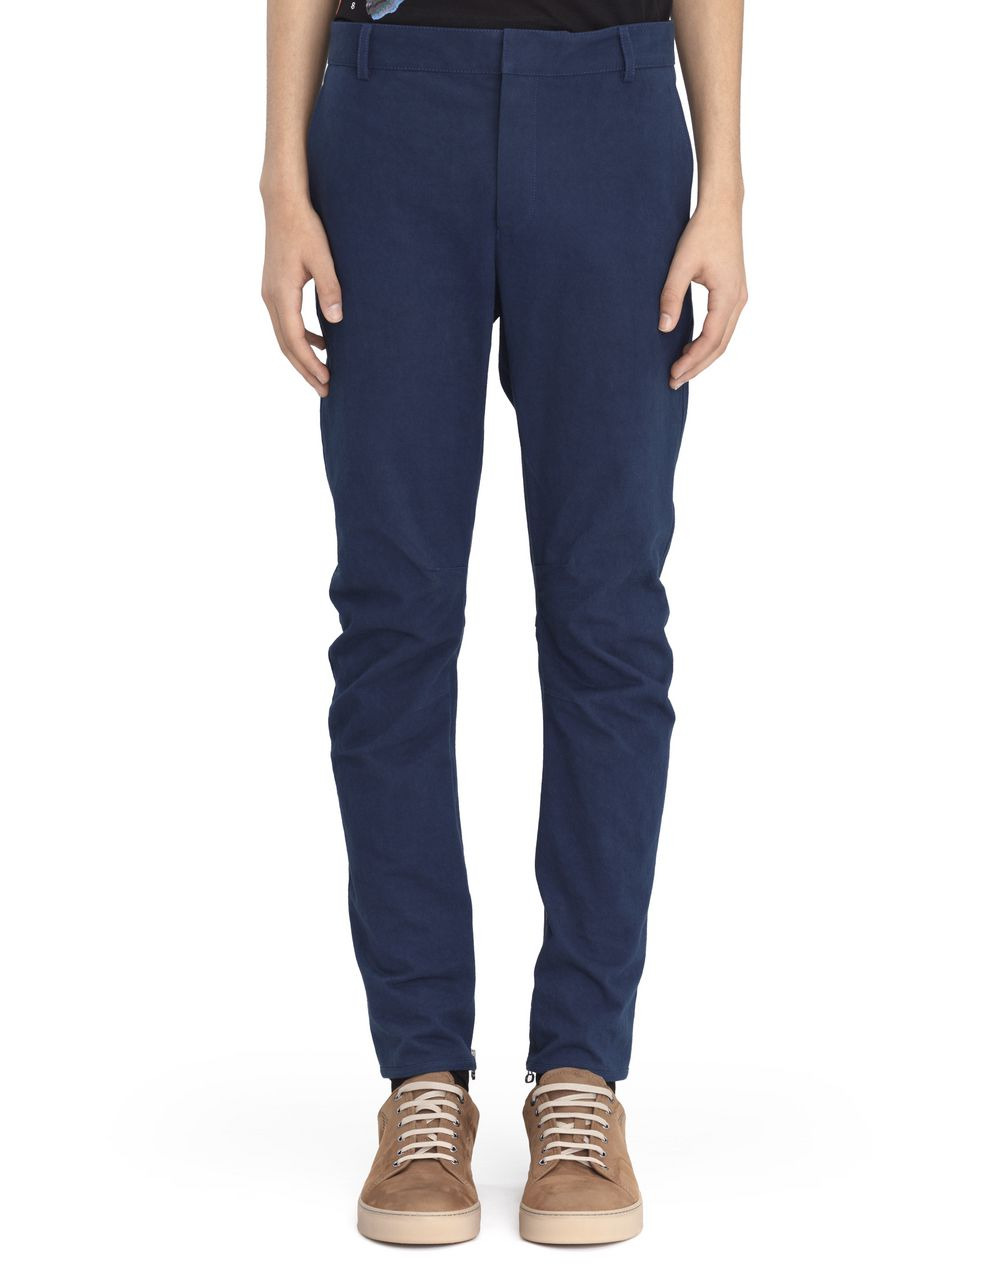 BLUE BIKER PANTS - Lanvin